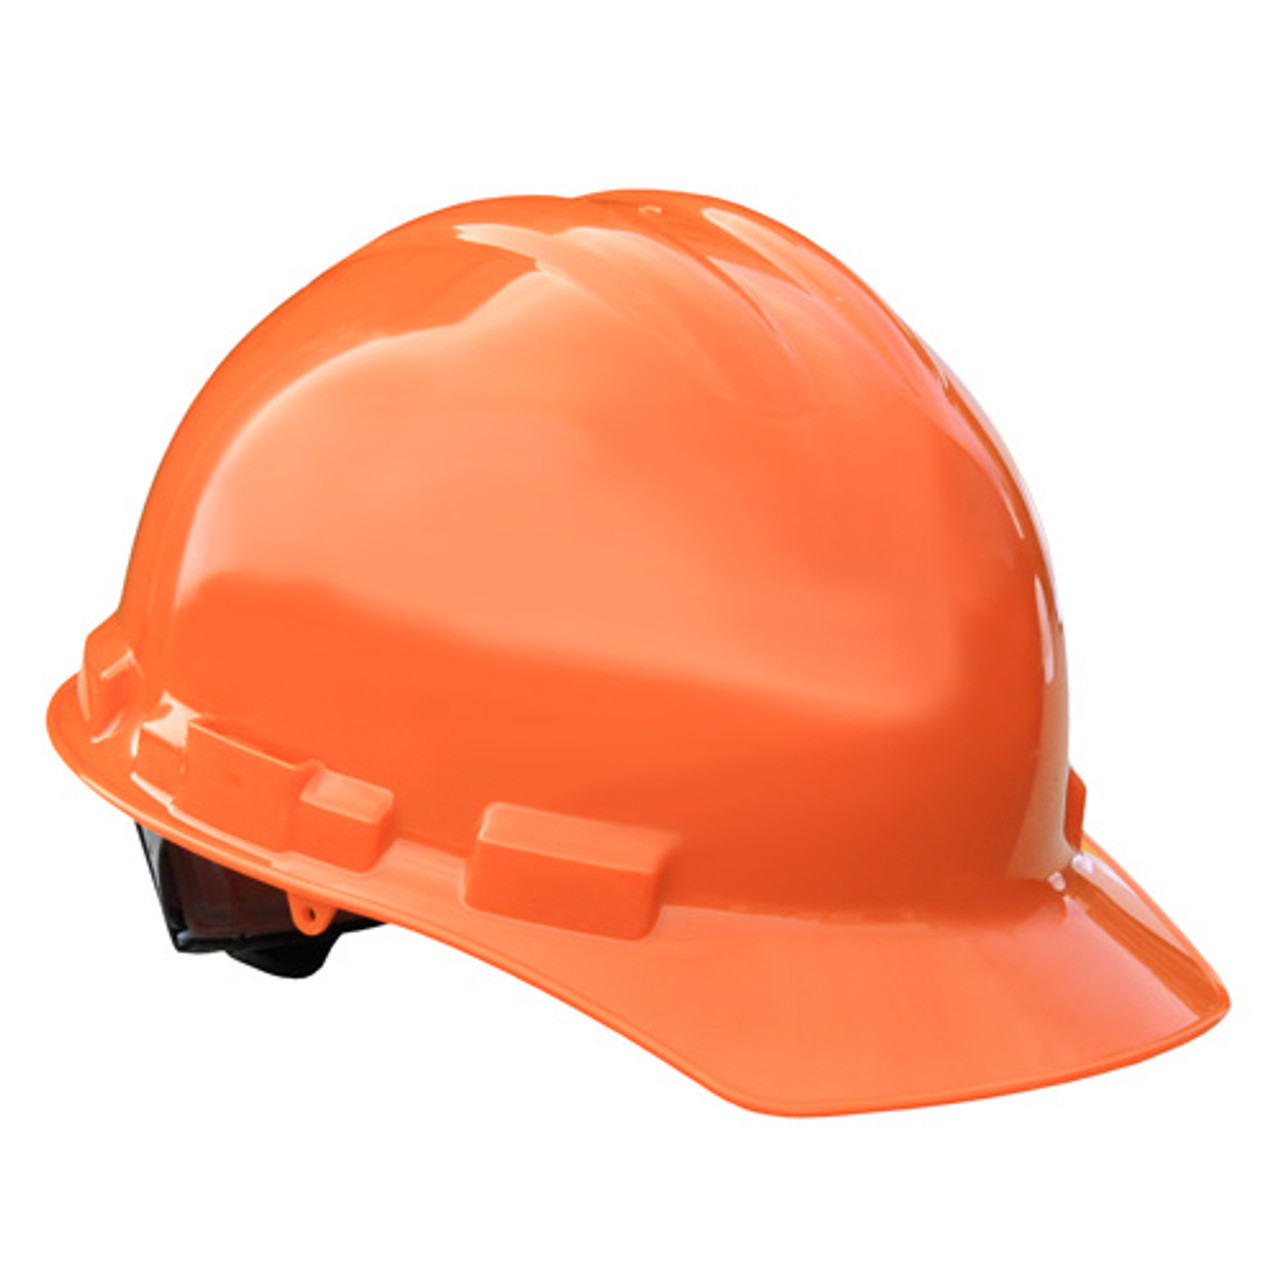 Orange Radians Hard Hat with Ratchet Suspension ANSI Type 1 Made in The USA